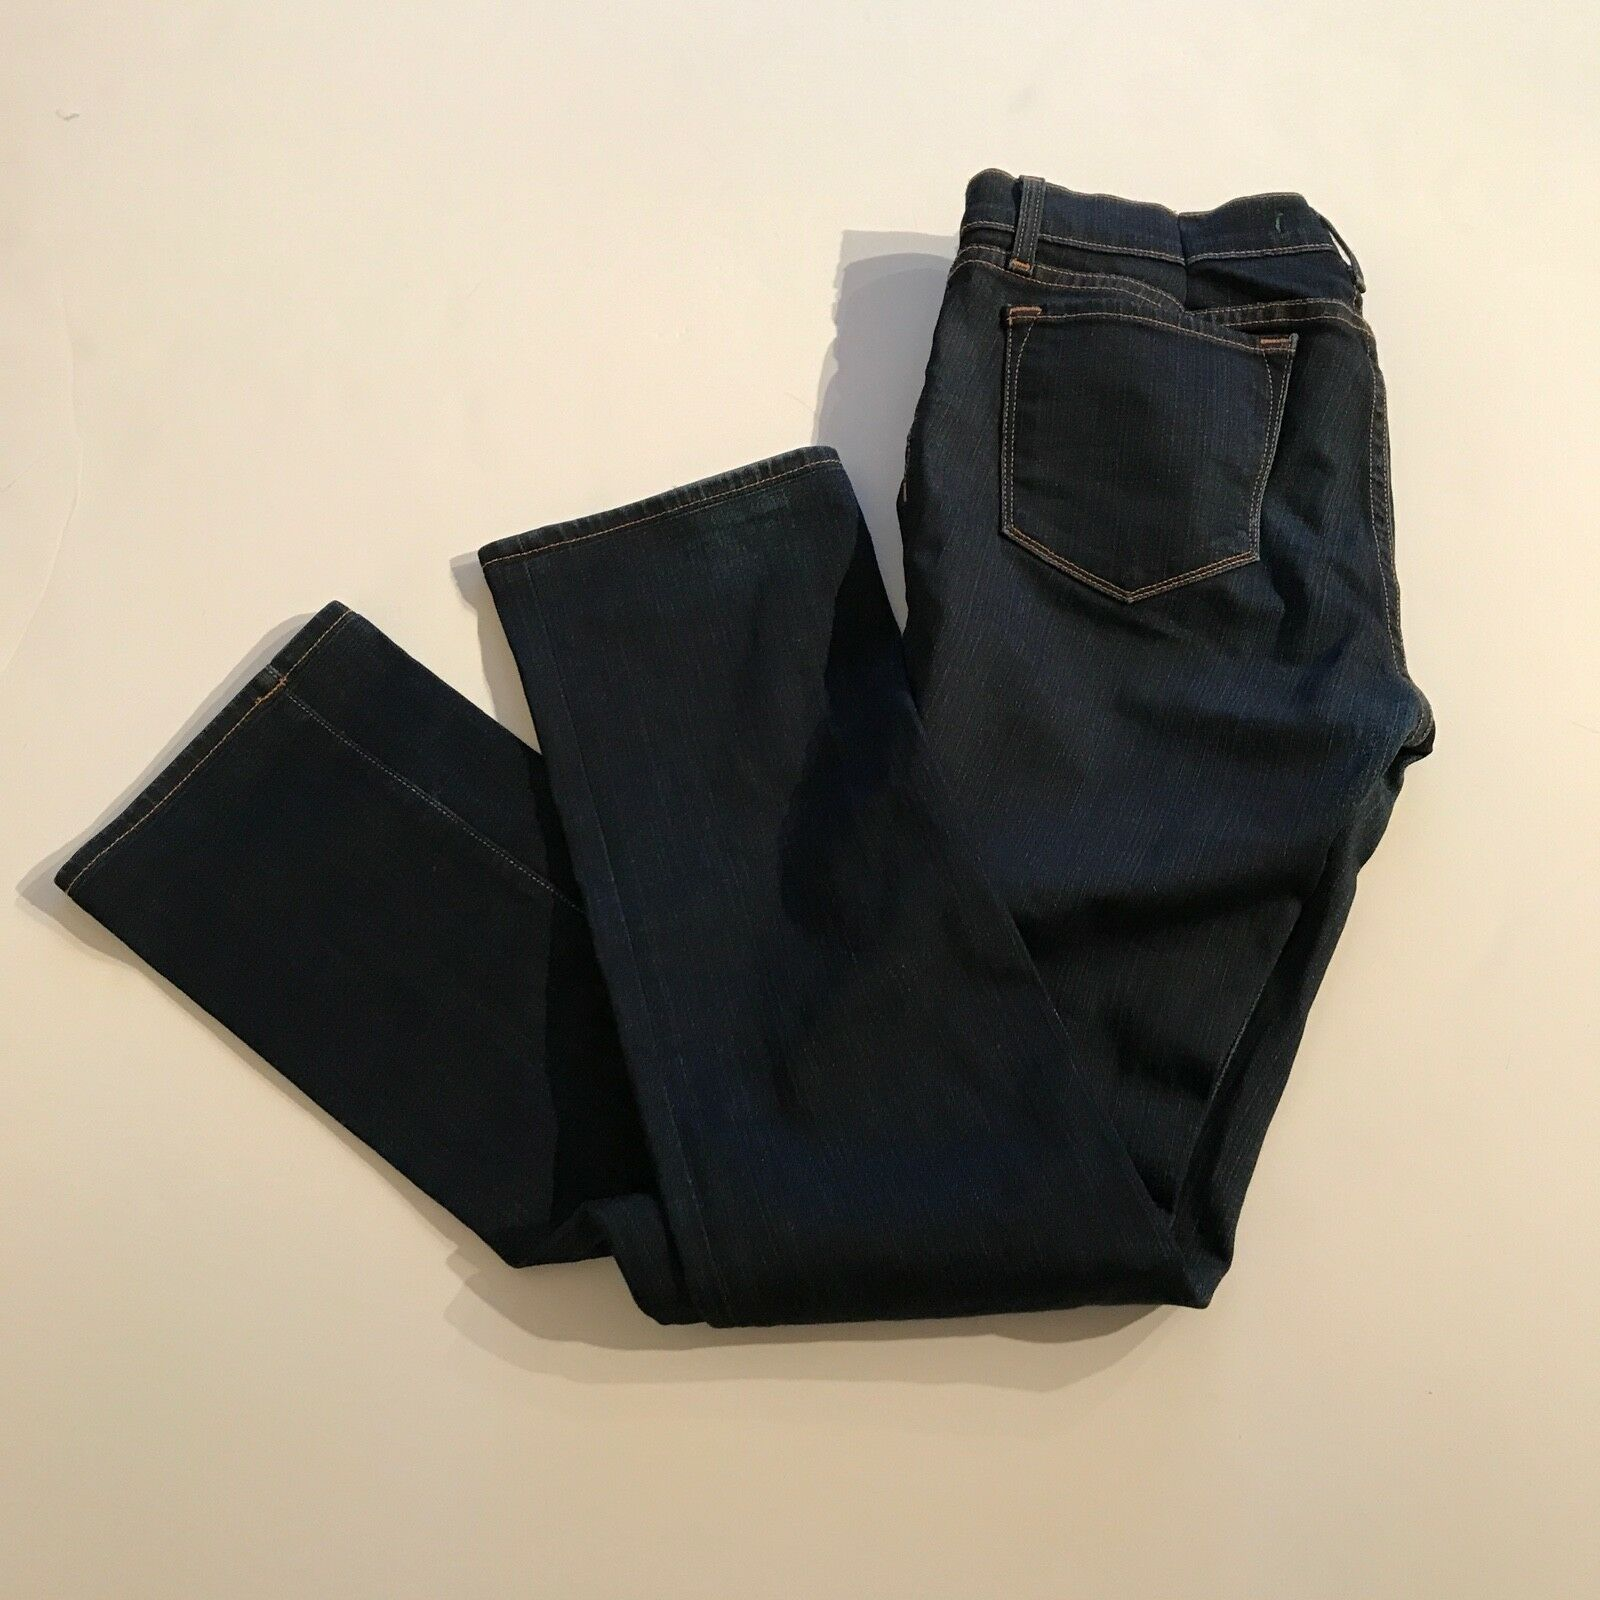 J Brand Women's The Cigarette Skinny Cotton Stretch 914 Ink Jeans Pants 32